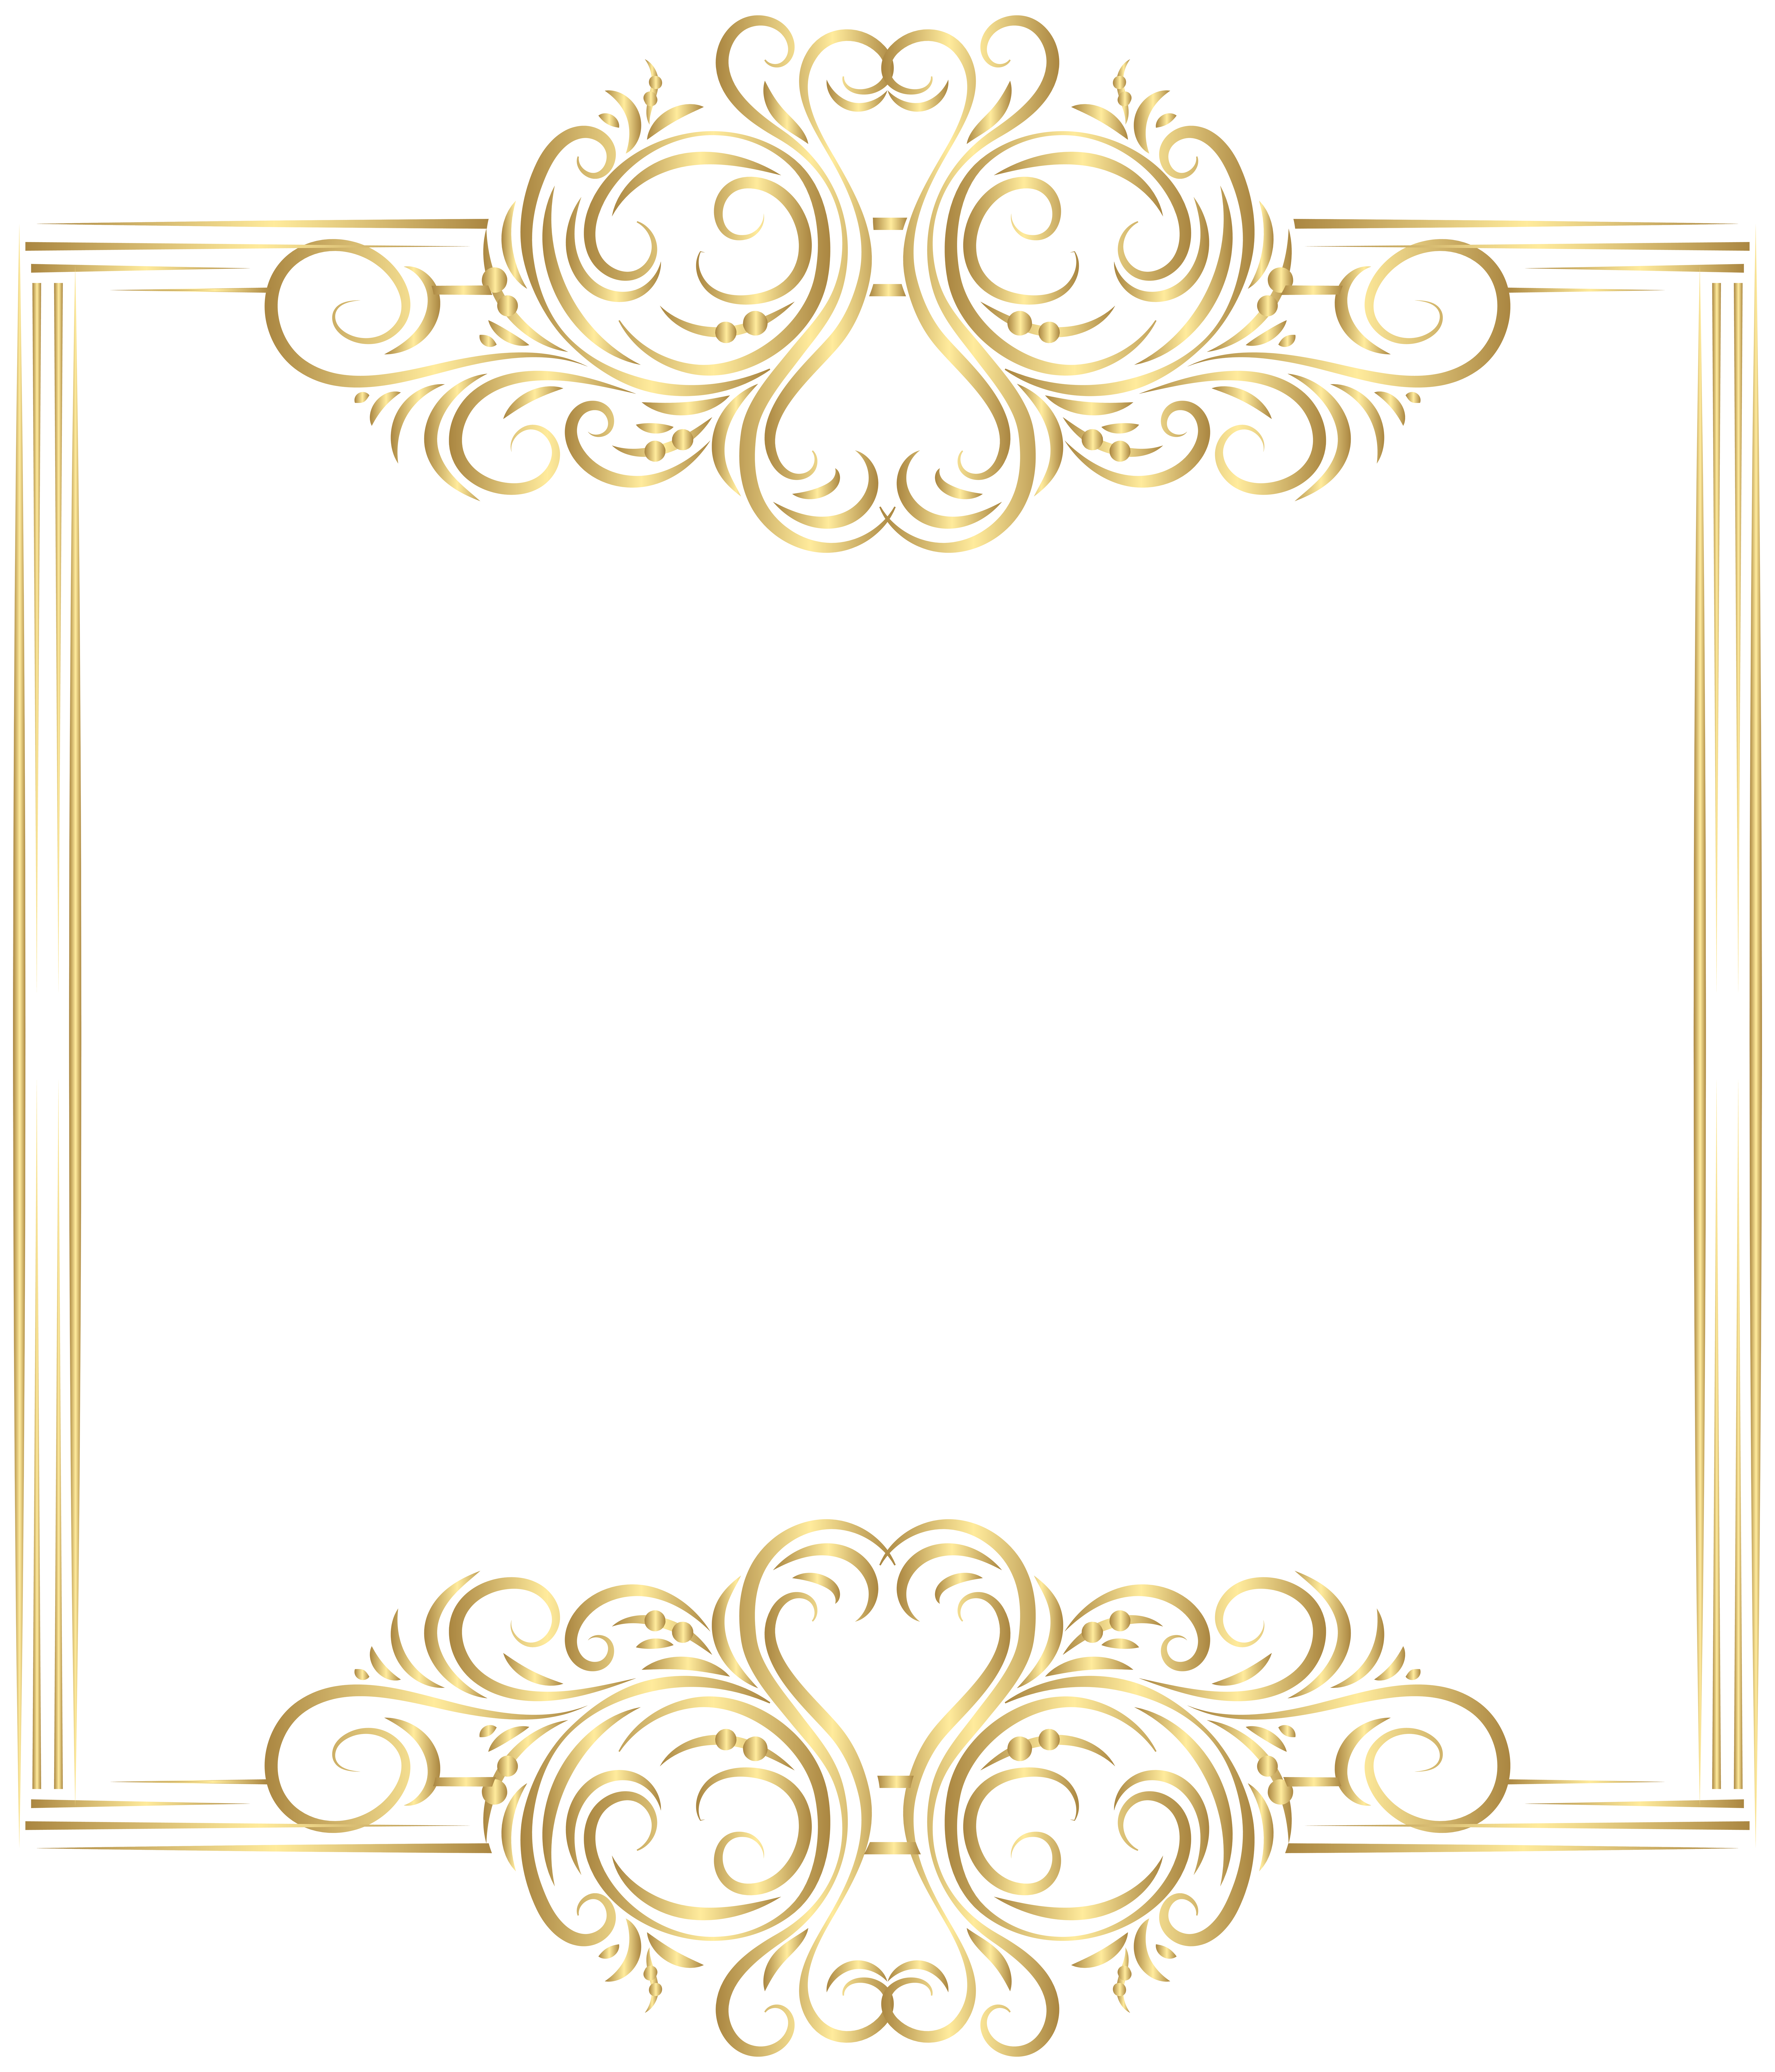 image freeuse stock Classic clipart invitation. Gold border frame png.